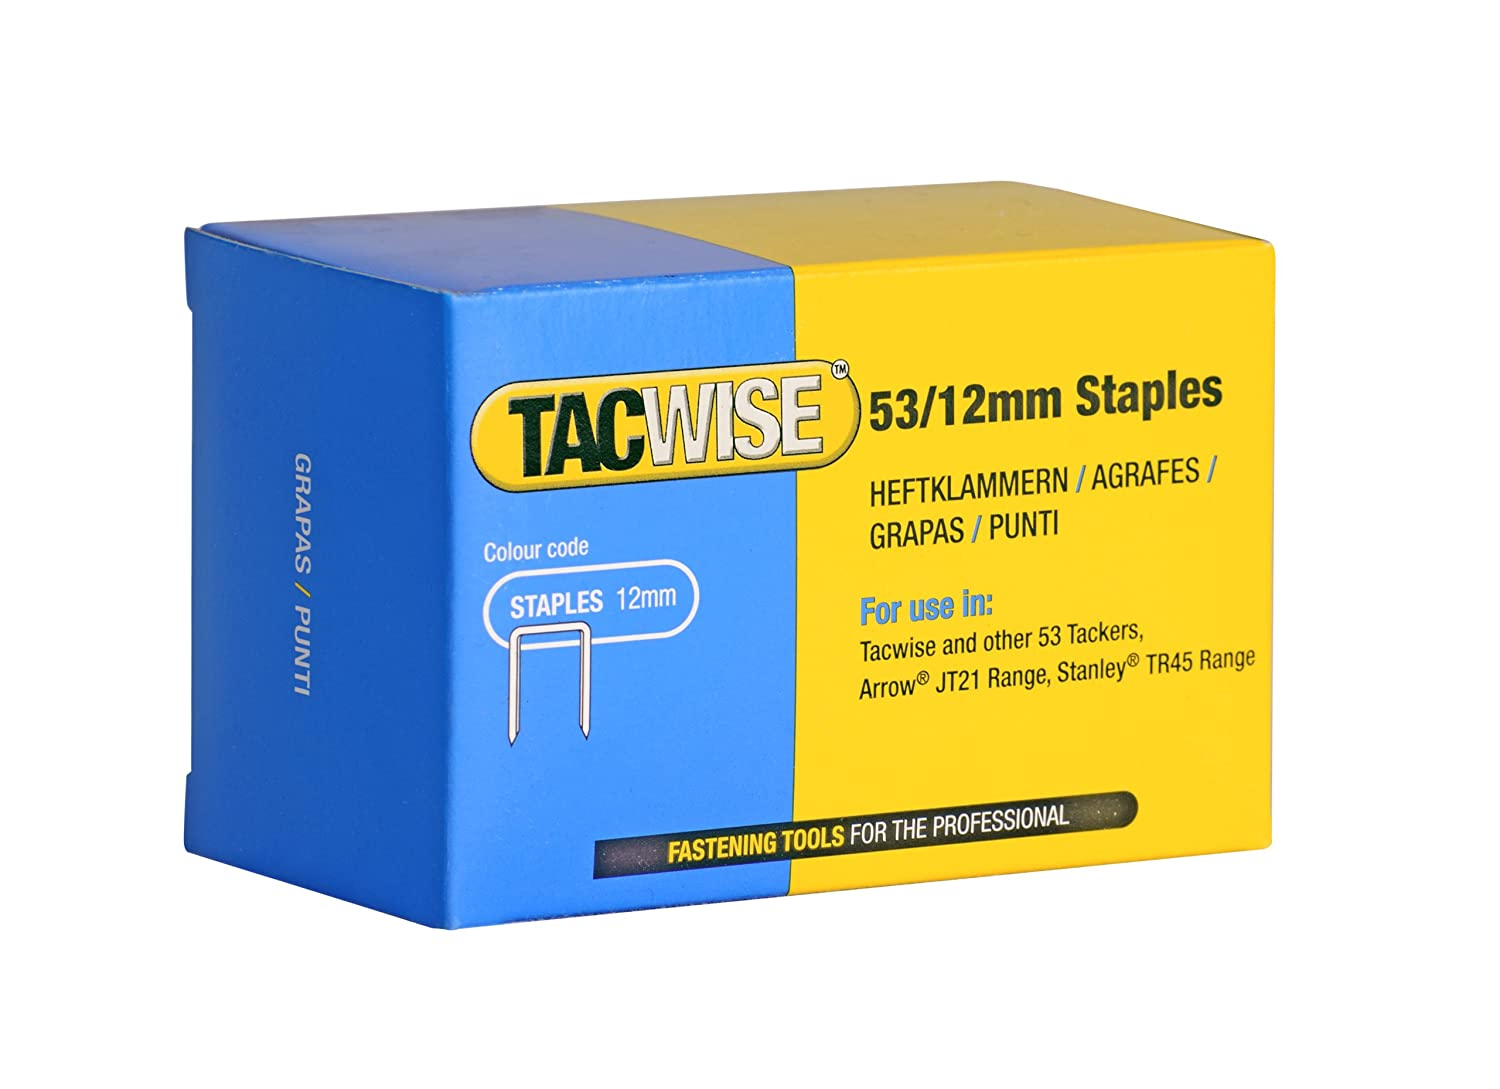 Diy Tools & Workshop Equipment Nail & Staple Guns 12 Mm Quantity 5000x Modern Design Tacwise Staples 140